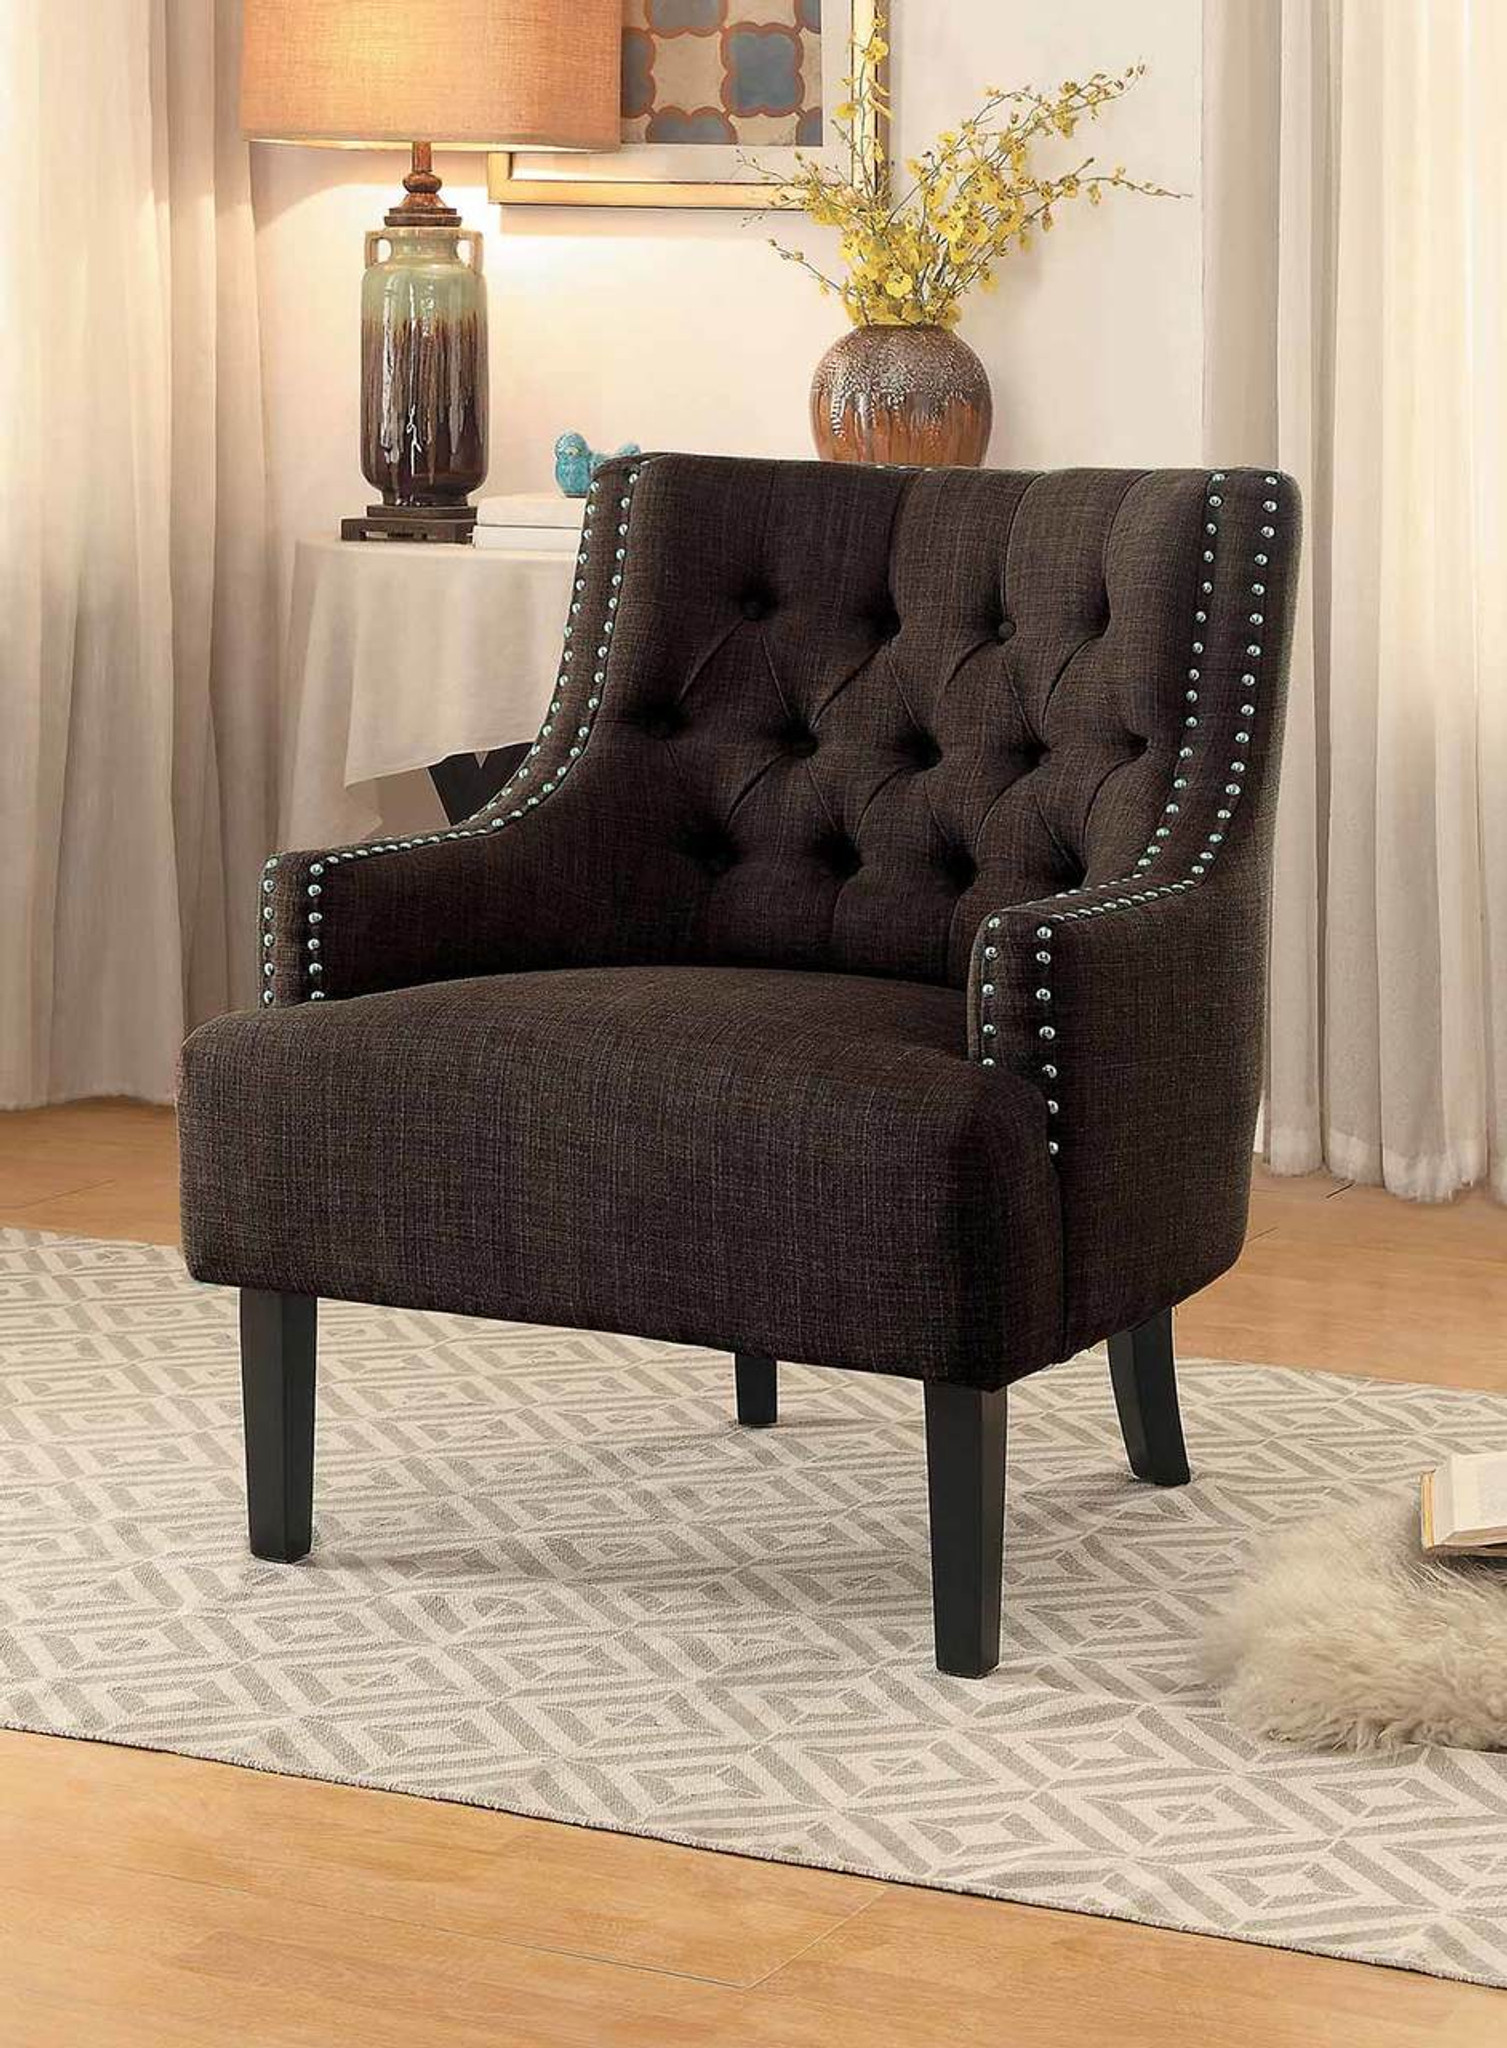 Sensational Charisma Accent Chair Chocolate Creativecarmelina Interior Chair Design Creativecarmelinacom